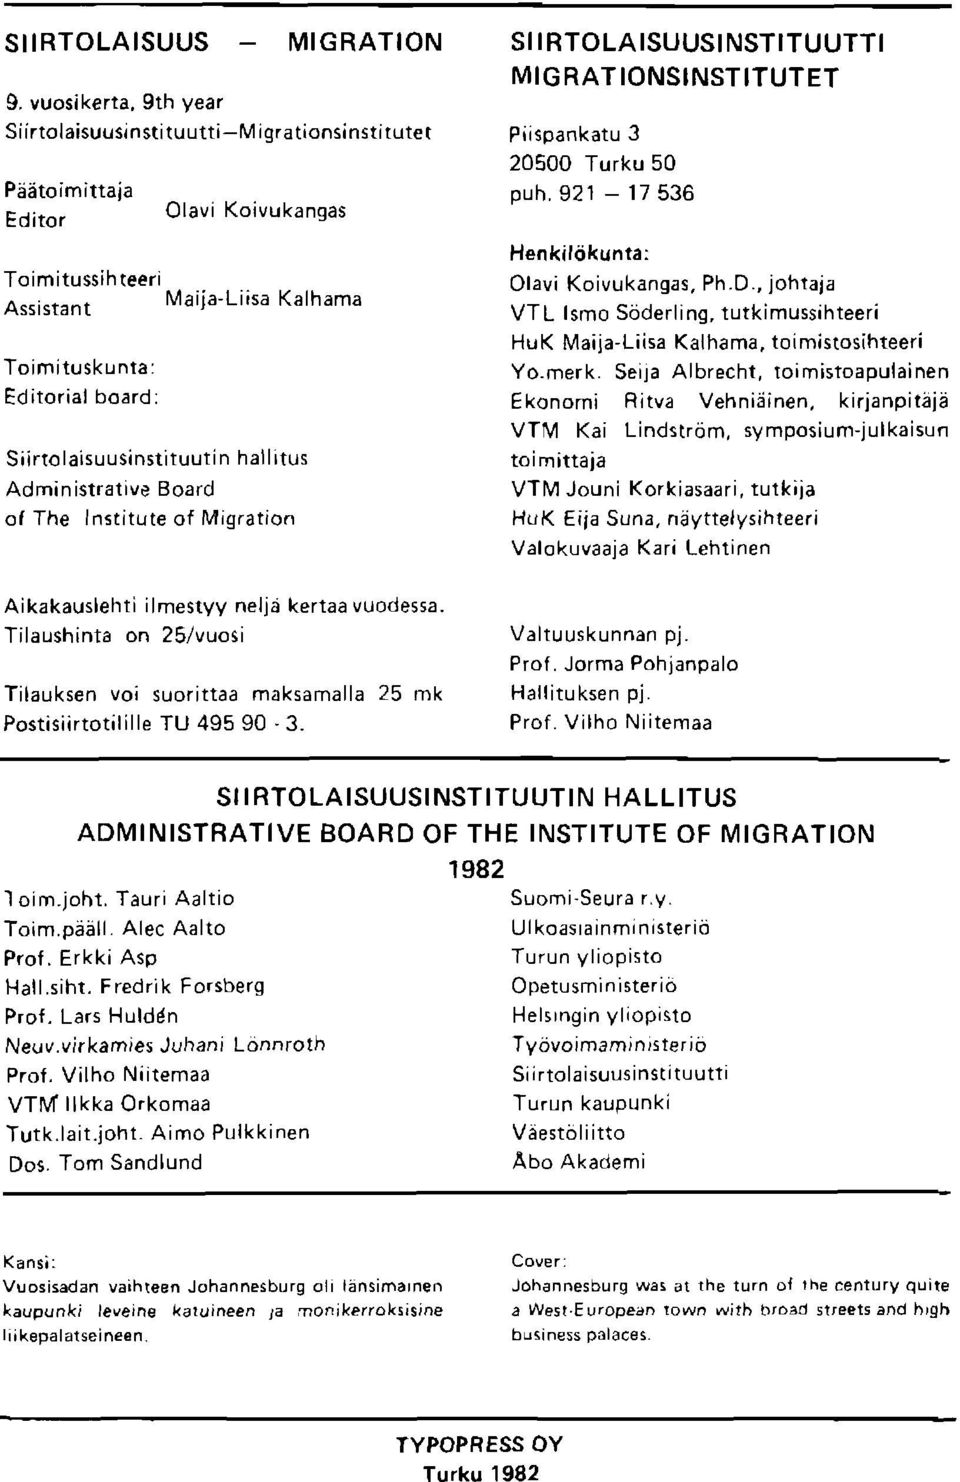 Toimituskunta: Editorial boardi Siirtolaisuusinstituutin hallitus Administrative Board of The lnstitute of Migration puh.921-17536 Henkil6kunta: Olavi Koivukangas. ph.d., johraja vrl rsmo sdde;ring, tut kimussih teeri HUK Maija'Liisa Kalhama.